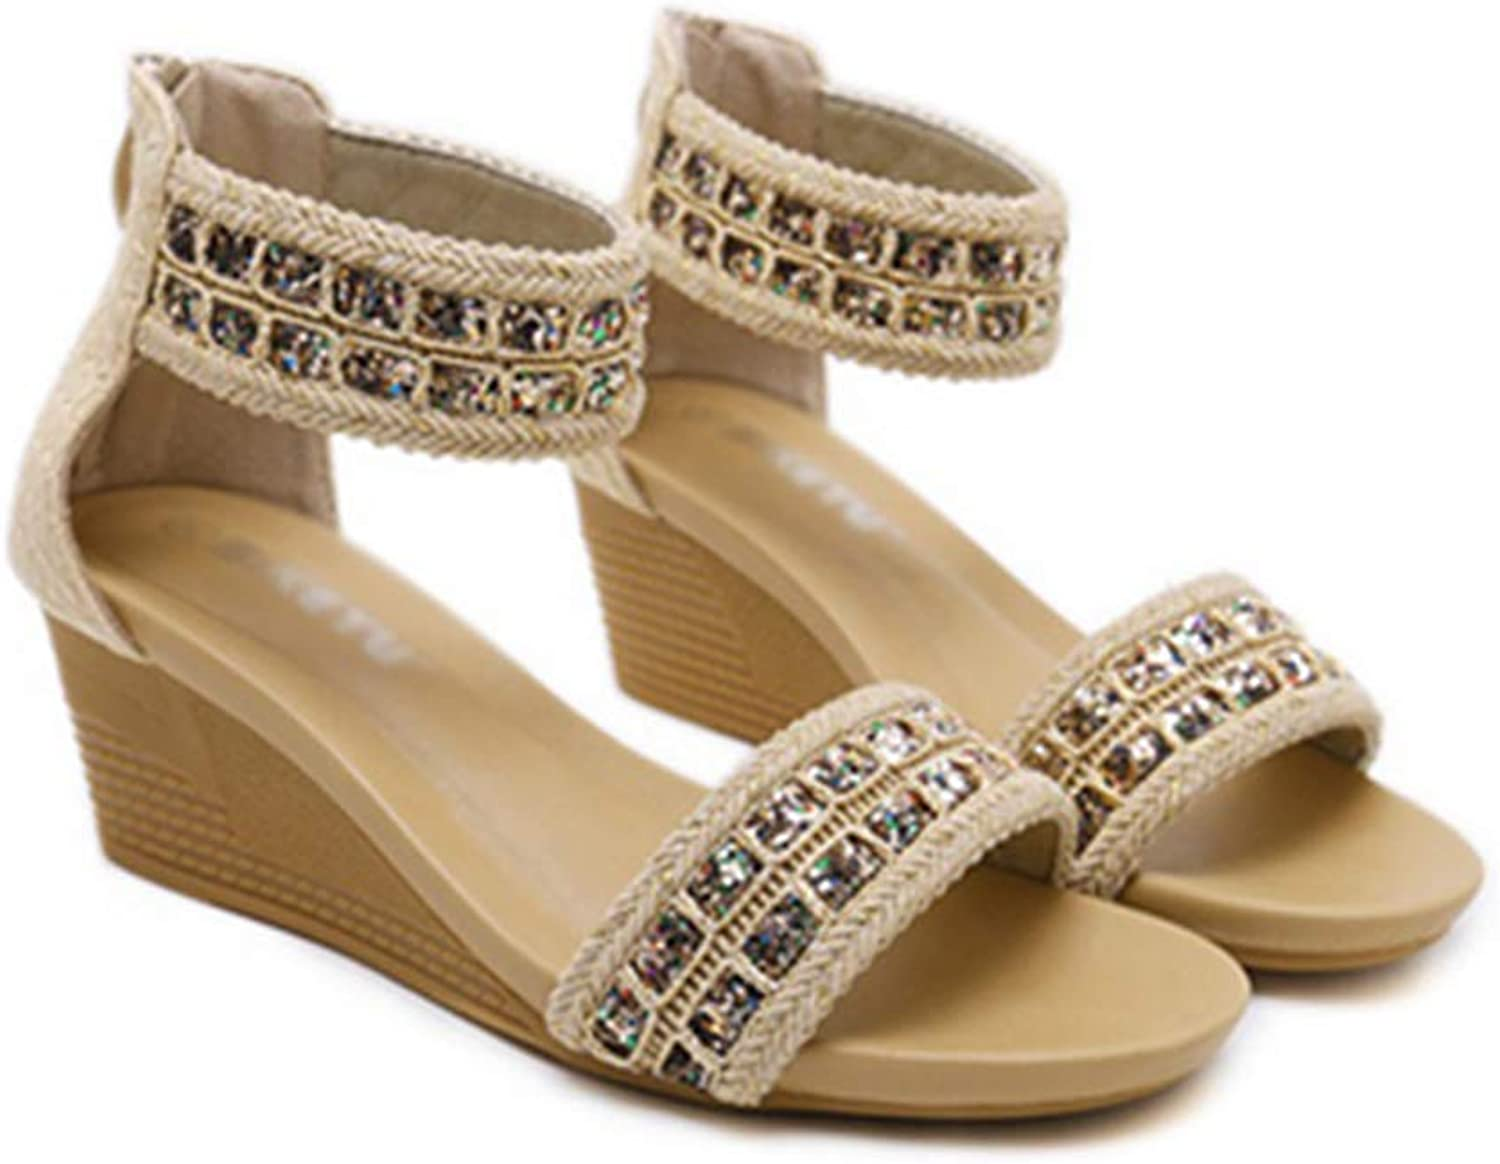 Women Sandals Wedge Open-Toe Bohemia Style Ladies Summer Casual Soft shoes